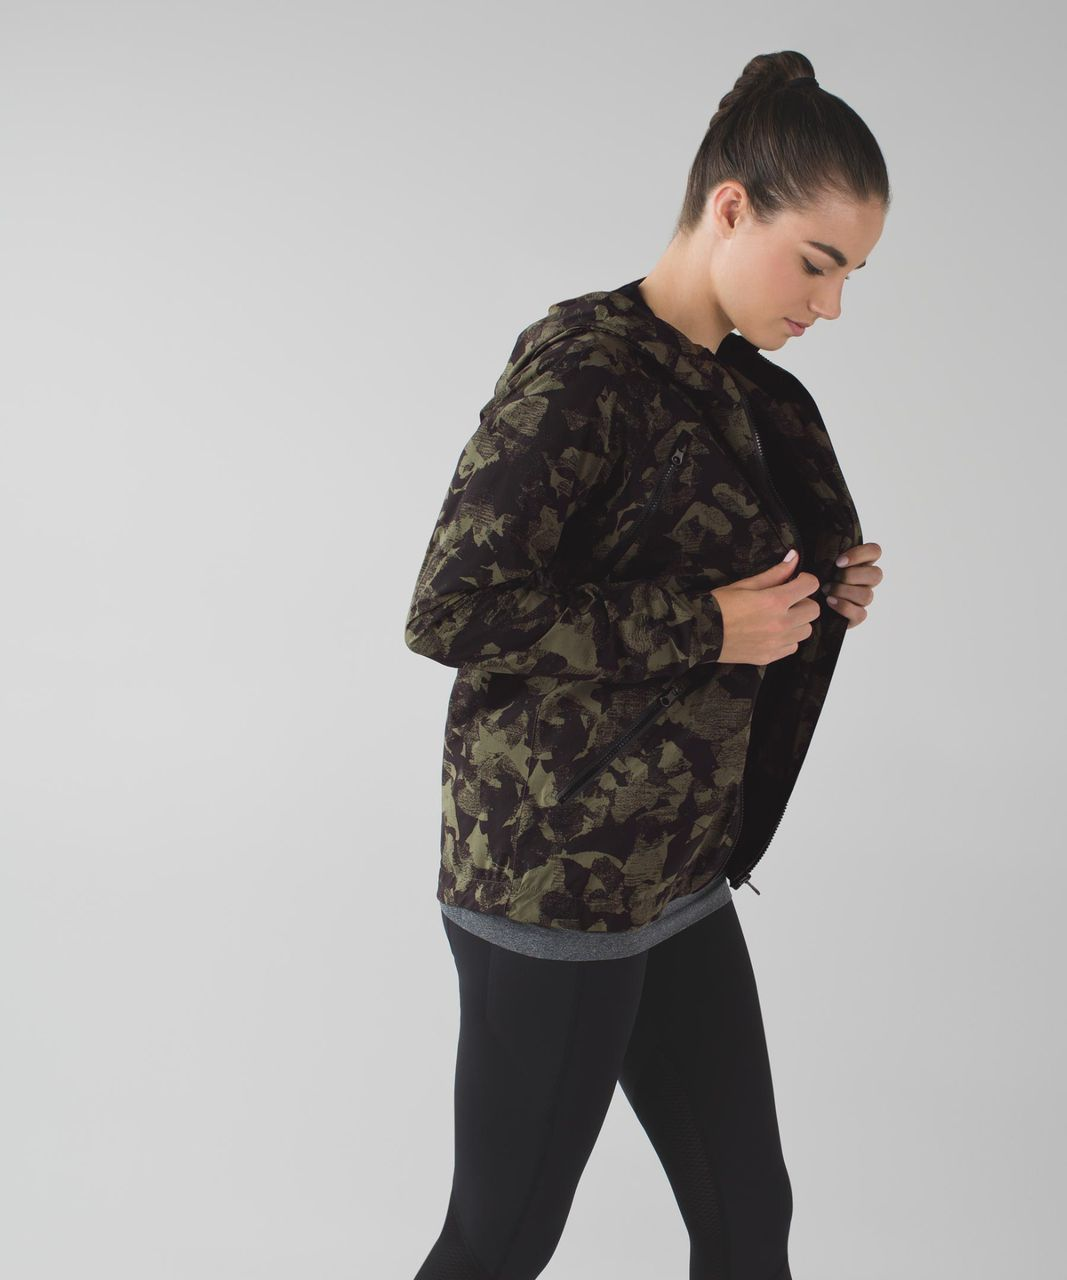 Lululemon Rise & Shine Jacket II - Jumbo Mystic Jungle Fatigue Green Black / Grey